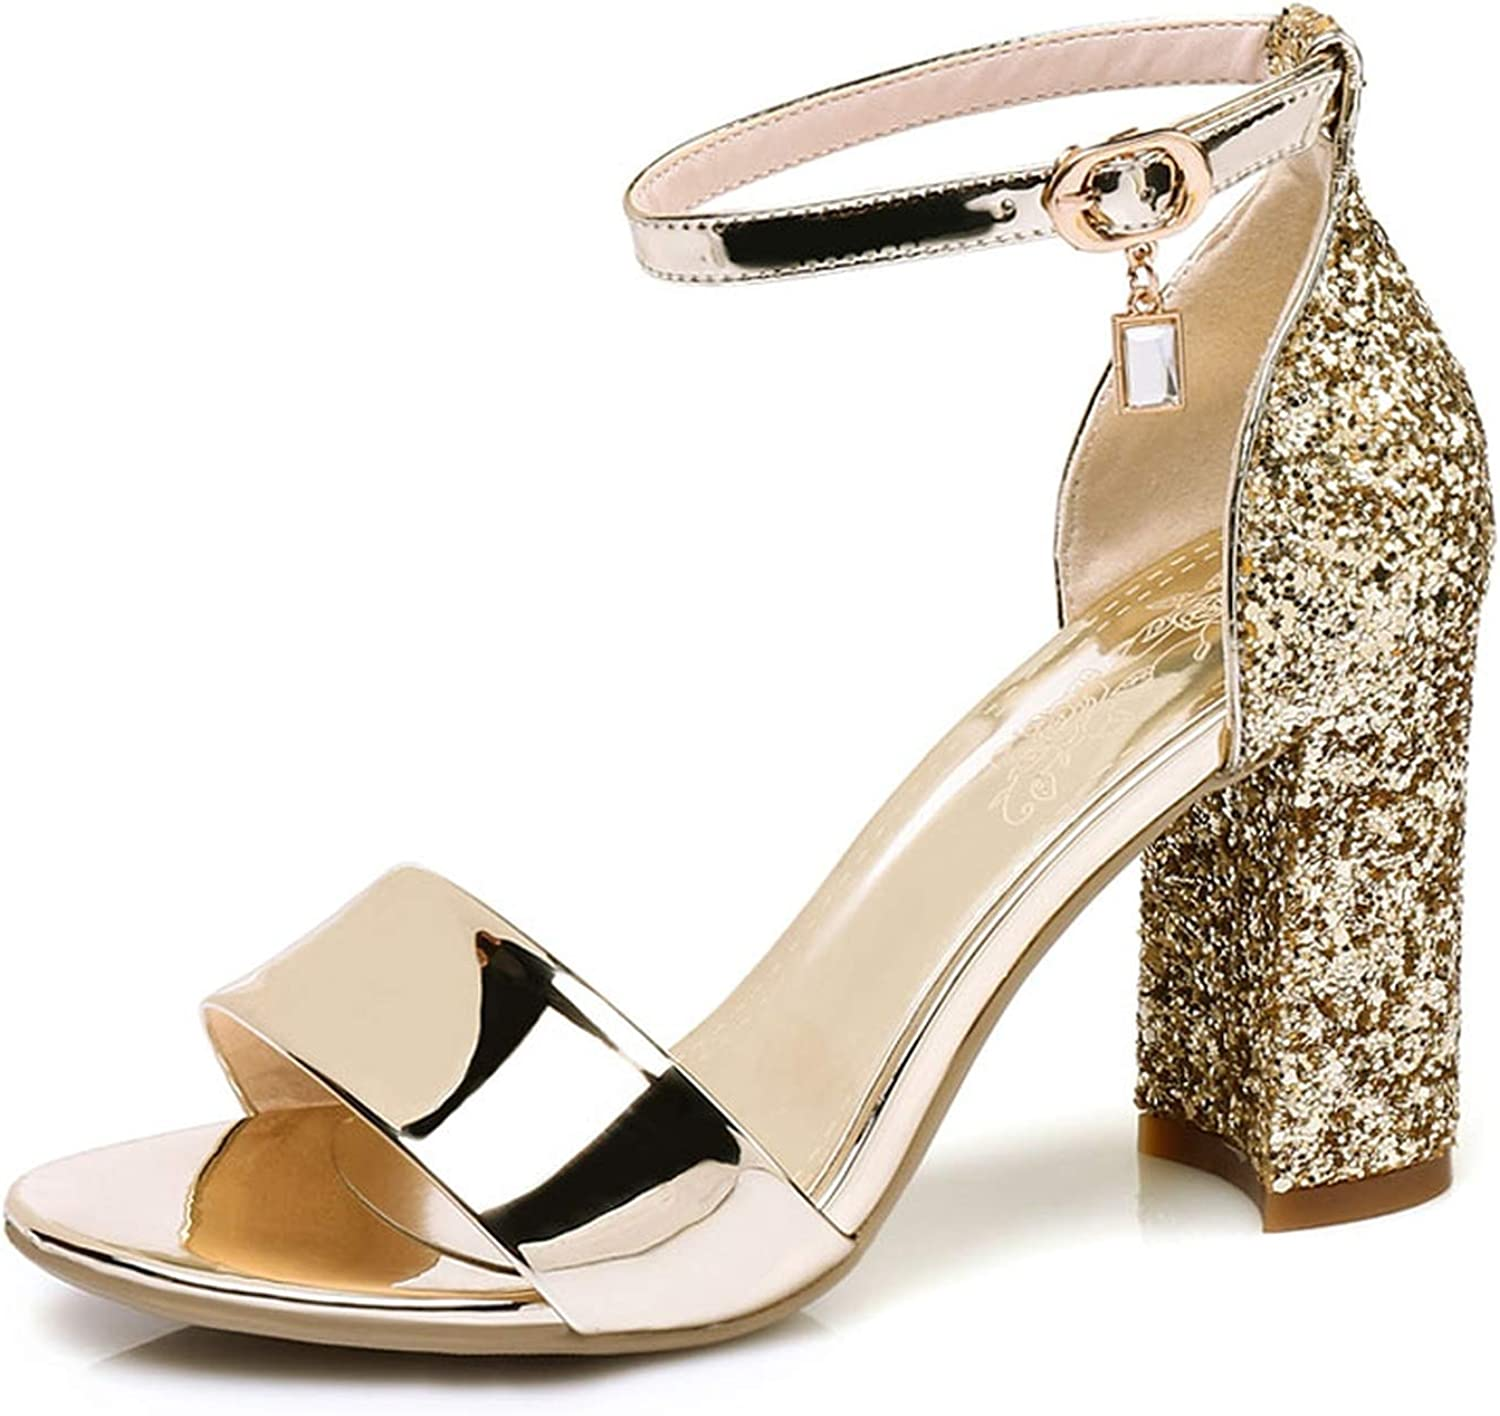 Bling Solid Women's High Heel Pumps Ankle Strap Ladies Sandals Open Toe Female's Extreme High-Heeled Sandals